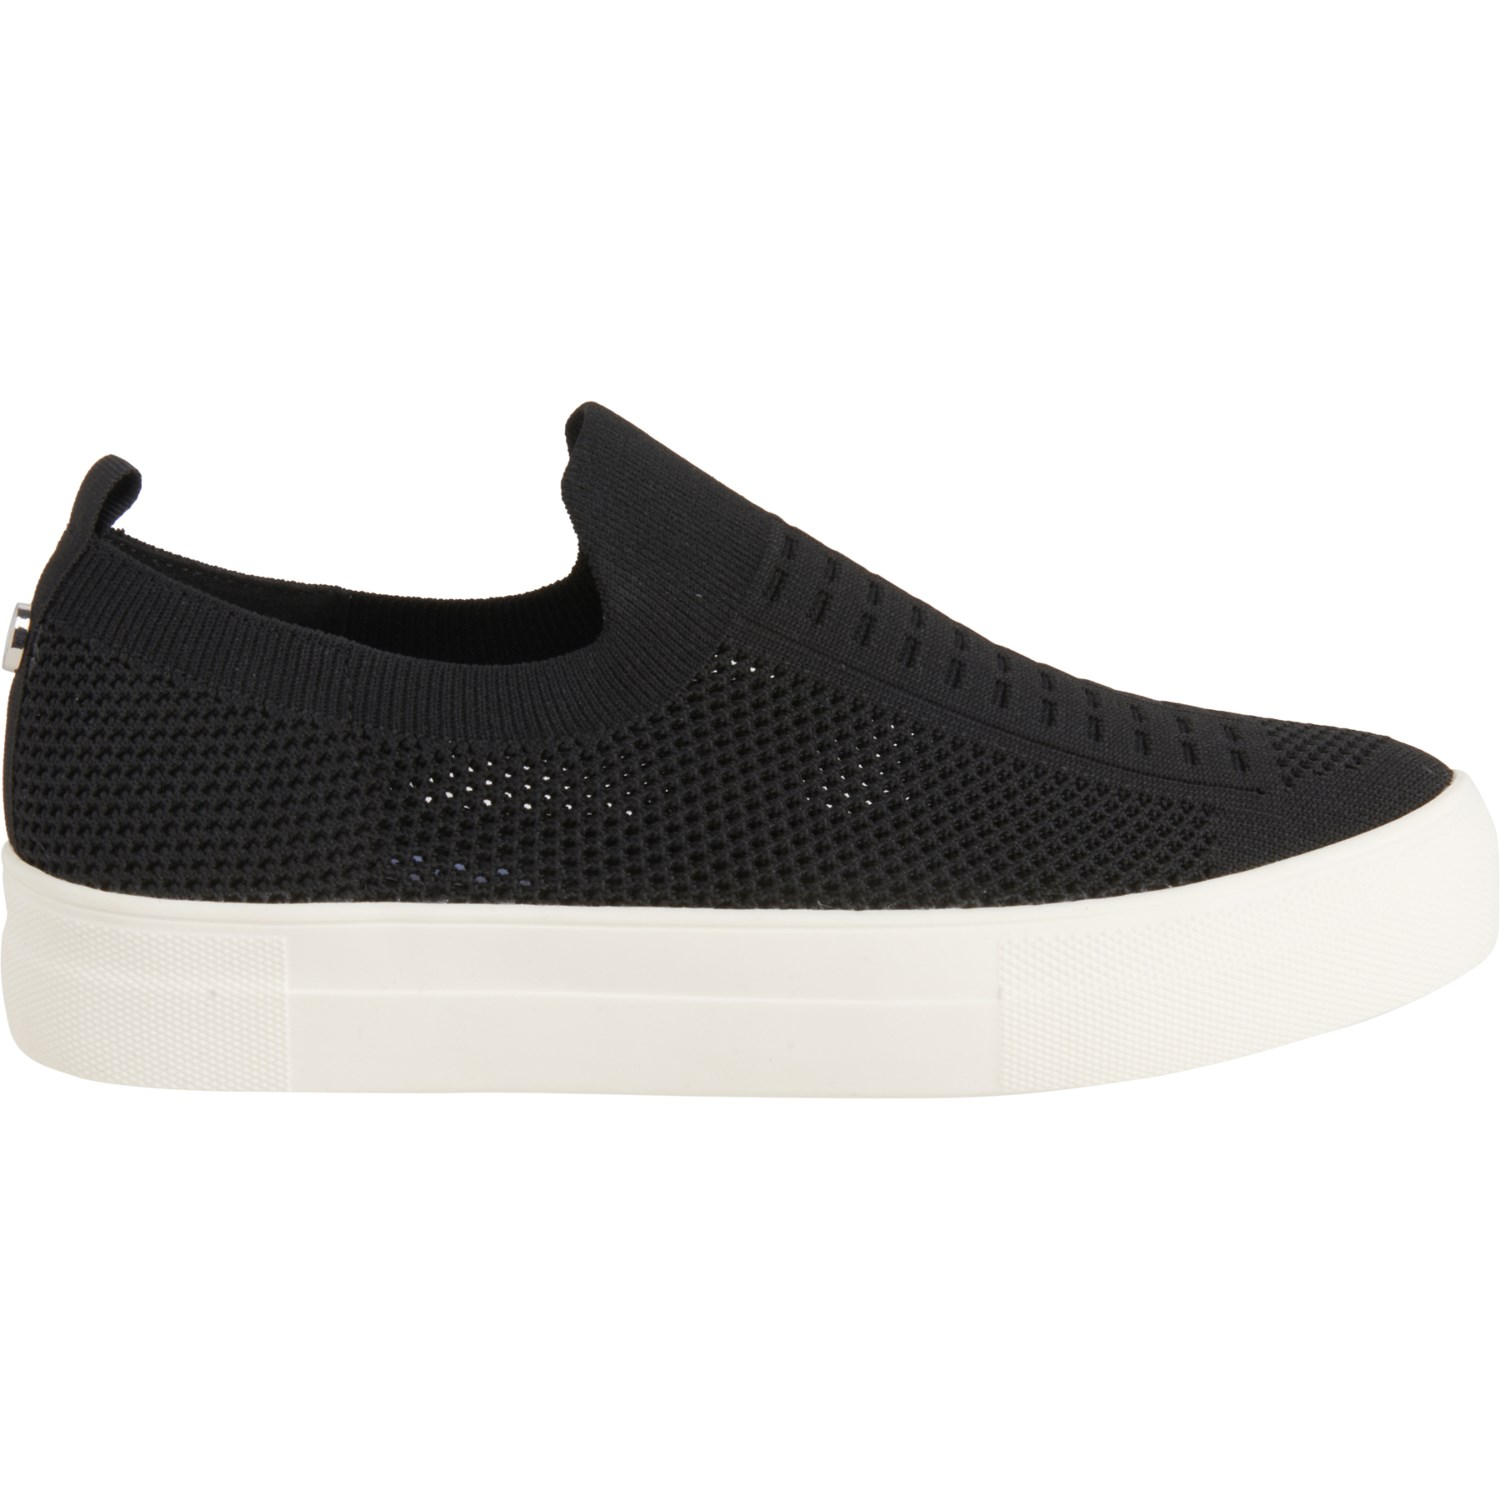 Steve Madden Daray Knit Sneakers (For